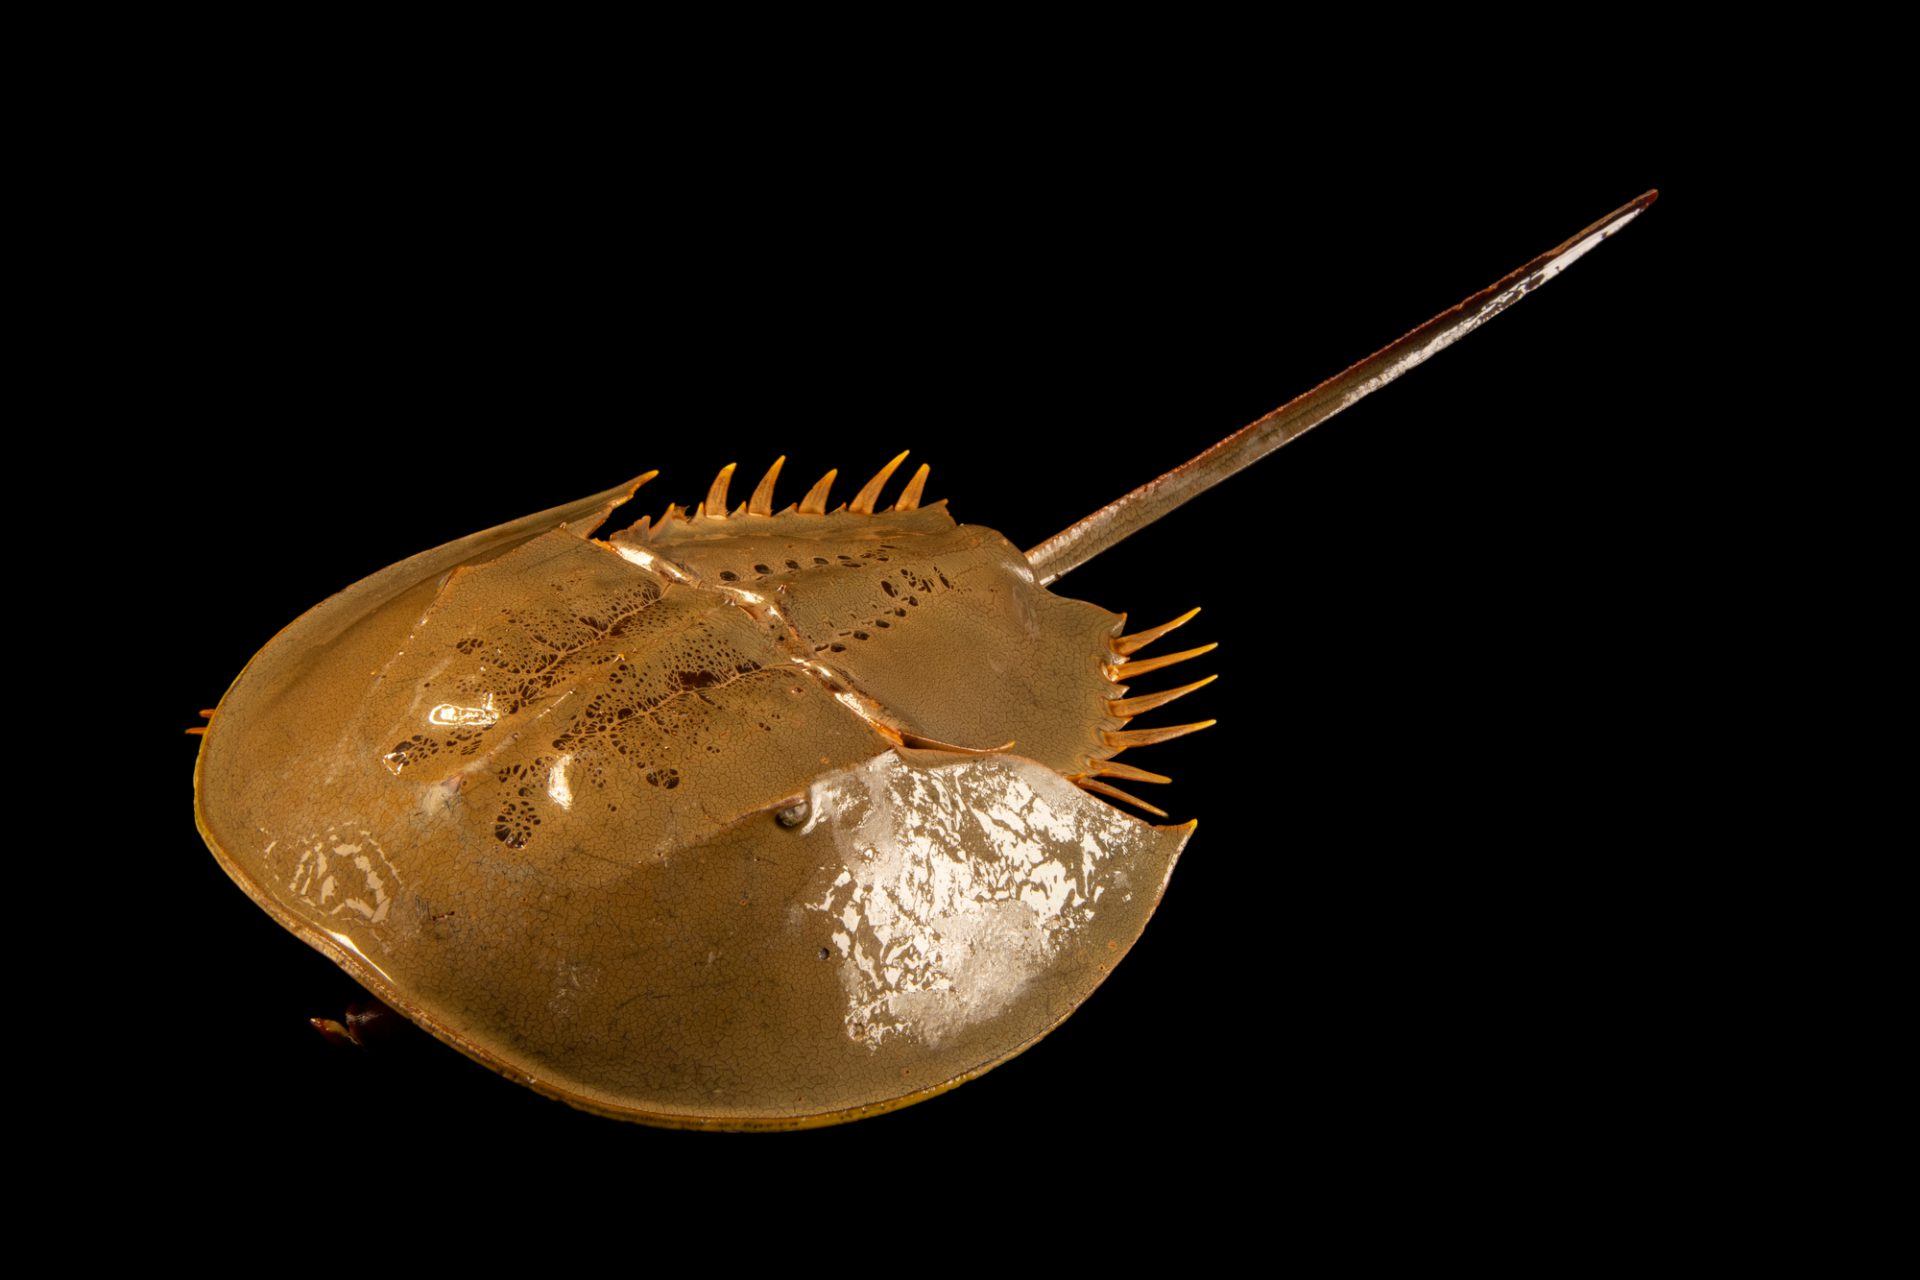 Photo: Mangrove horseshoe crab (Carcinoscorpius rotundicauda) at the Singapore Zoo.